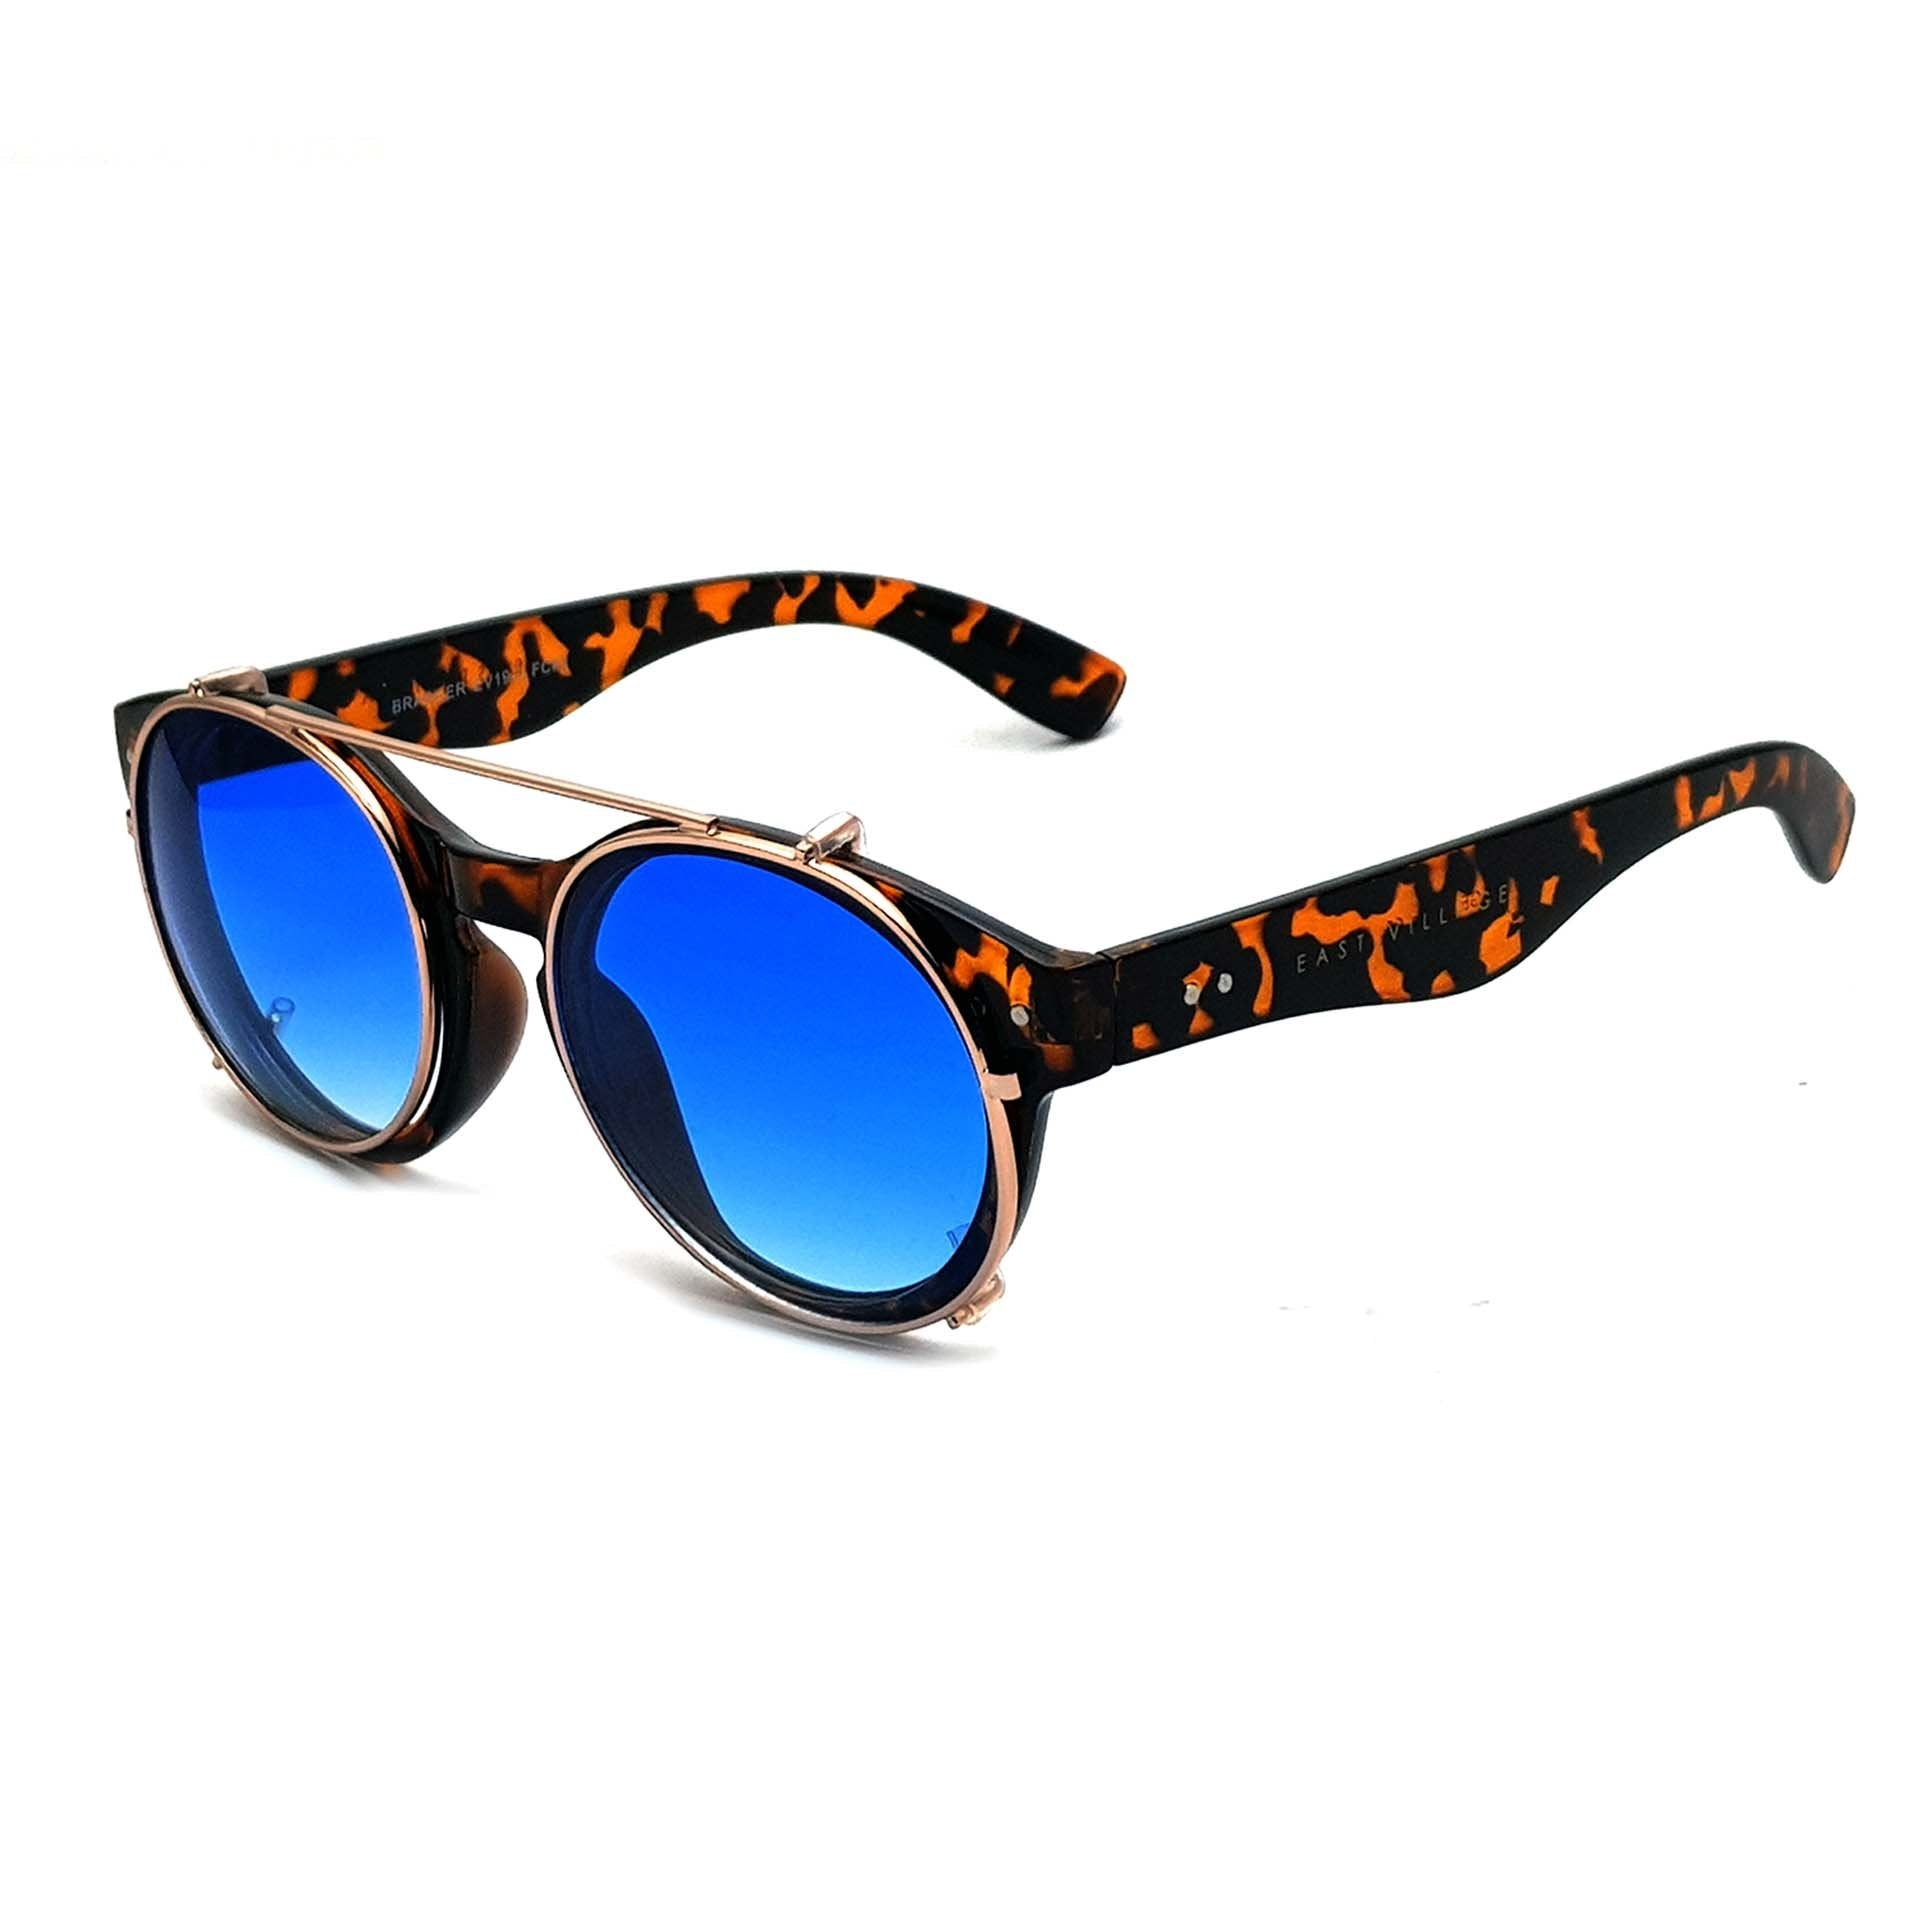 East Village Brawler Round Sunglasses Tortoiseshell And Metal With Blue Lens